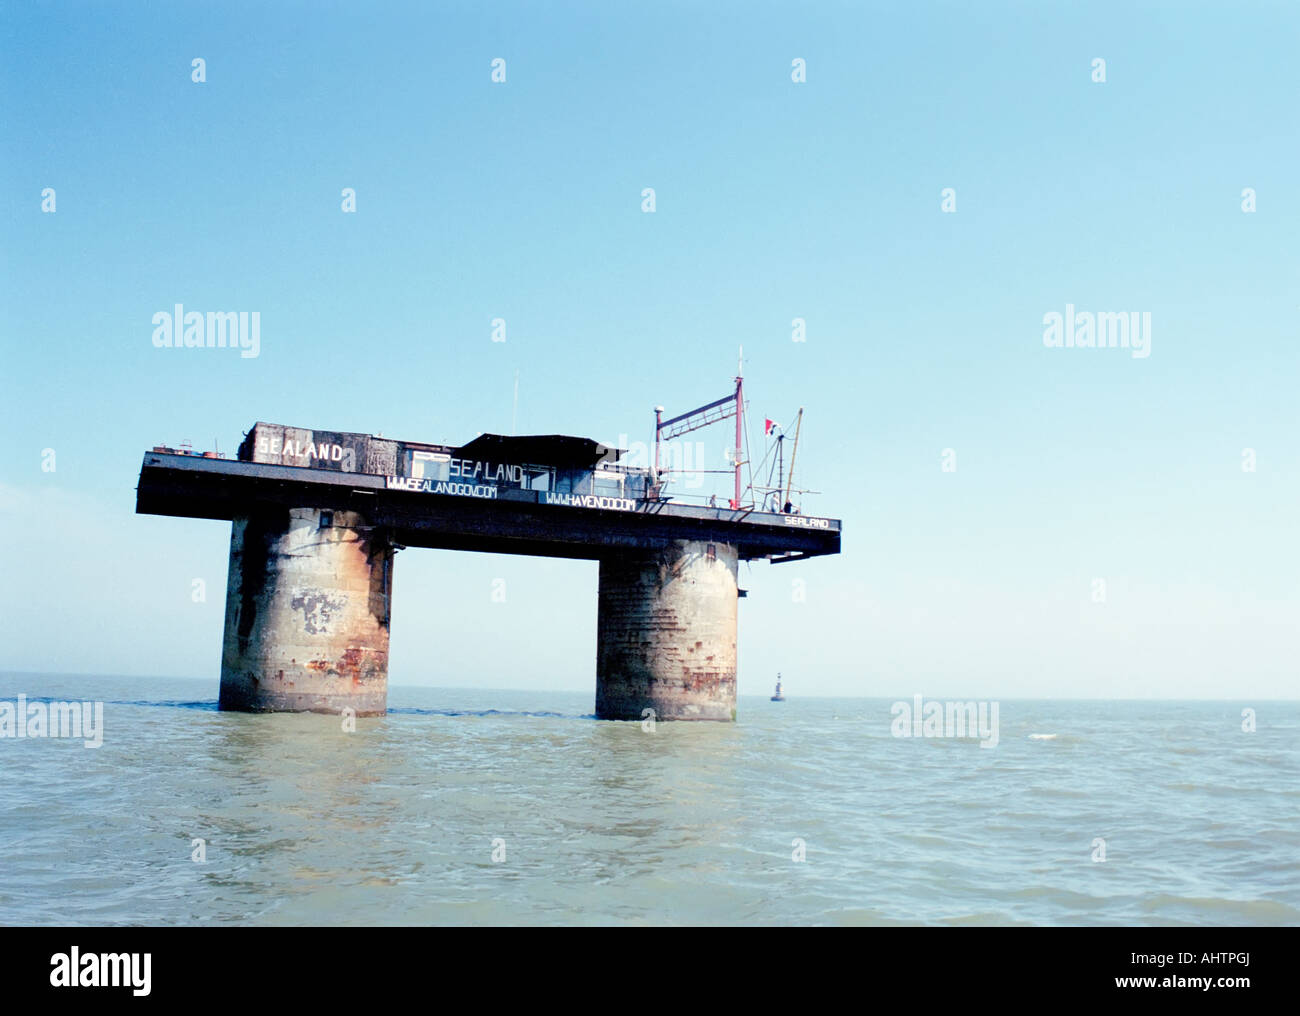 The Principality of Sealand, a micronation 12 nautical miles from the British coast. - Stock Image